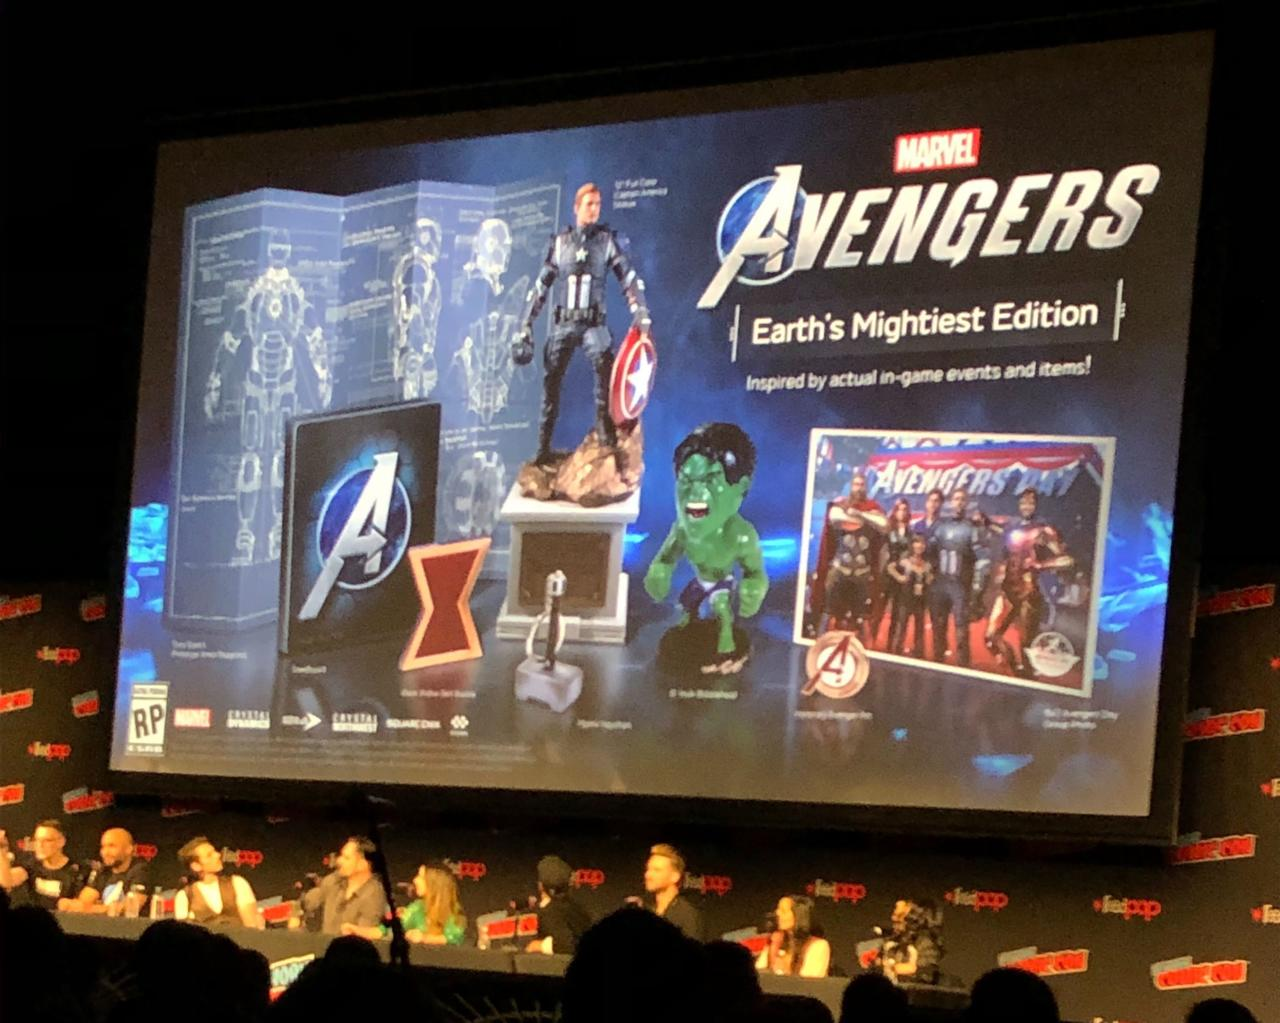 Marvel's Avengers – Earth's Mightiest Edition